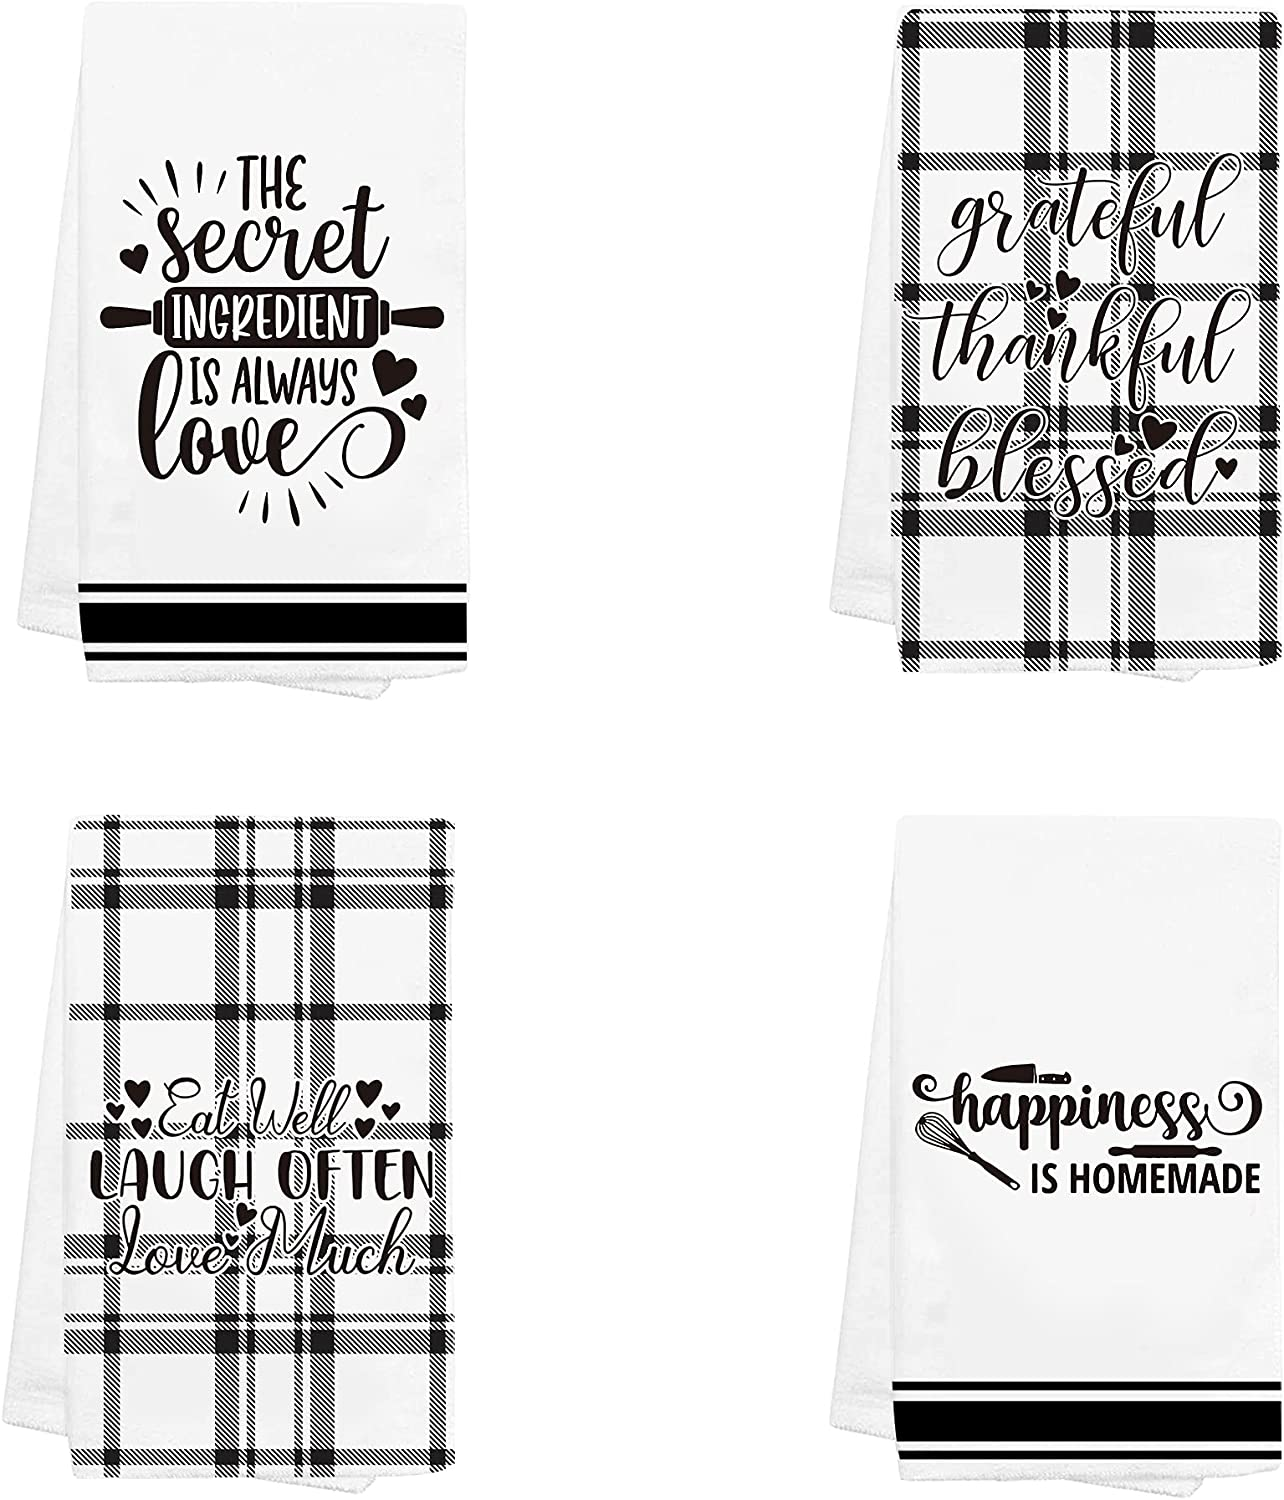 Hexagram Cute Kitchen Towels for Home Decor, Set of 4 Dish Towel with Printed Design, White and Black Hand Towel for Tea Coffee Bar, House Warming Present for New Home Valentines Mothers Day Birthday